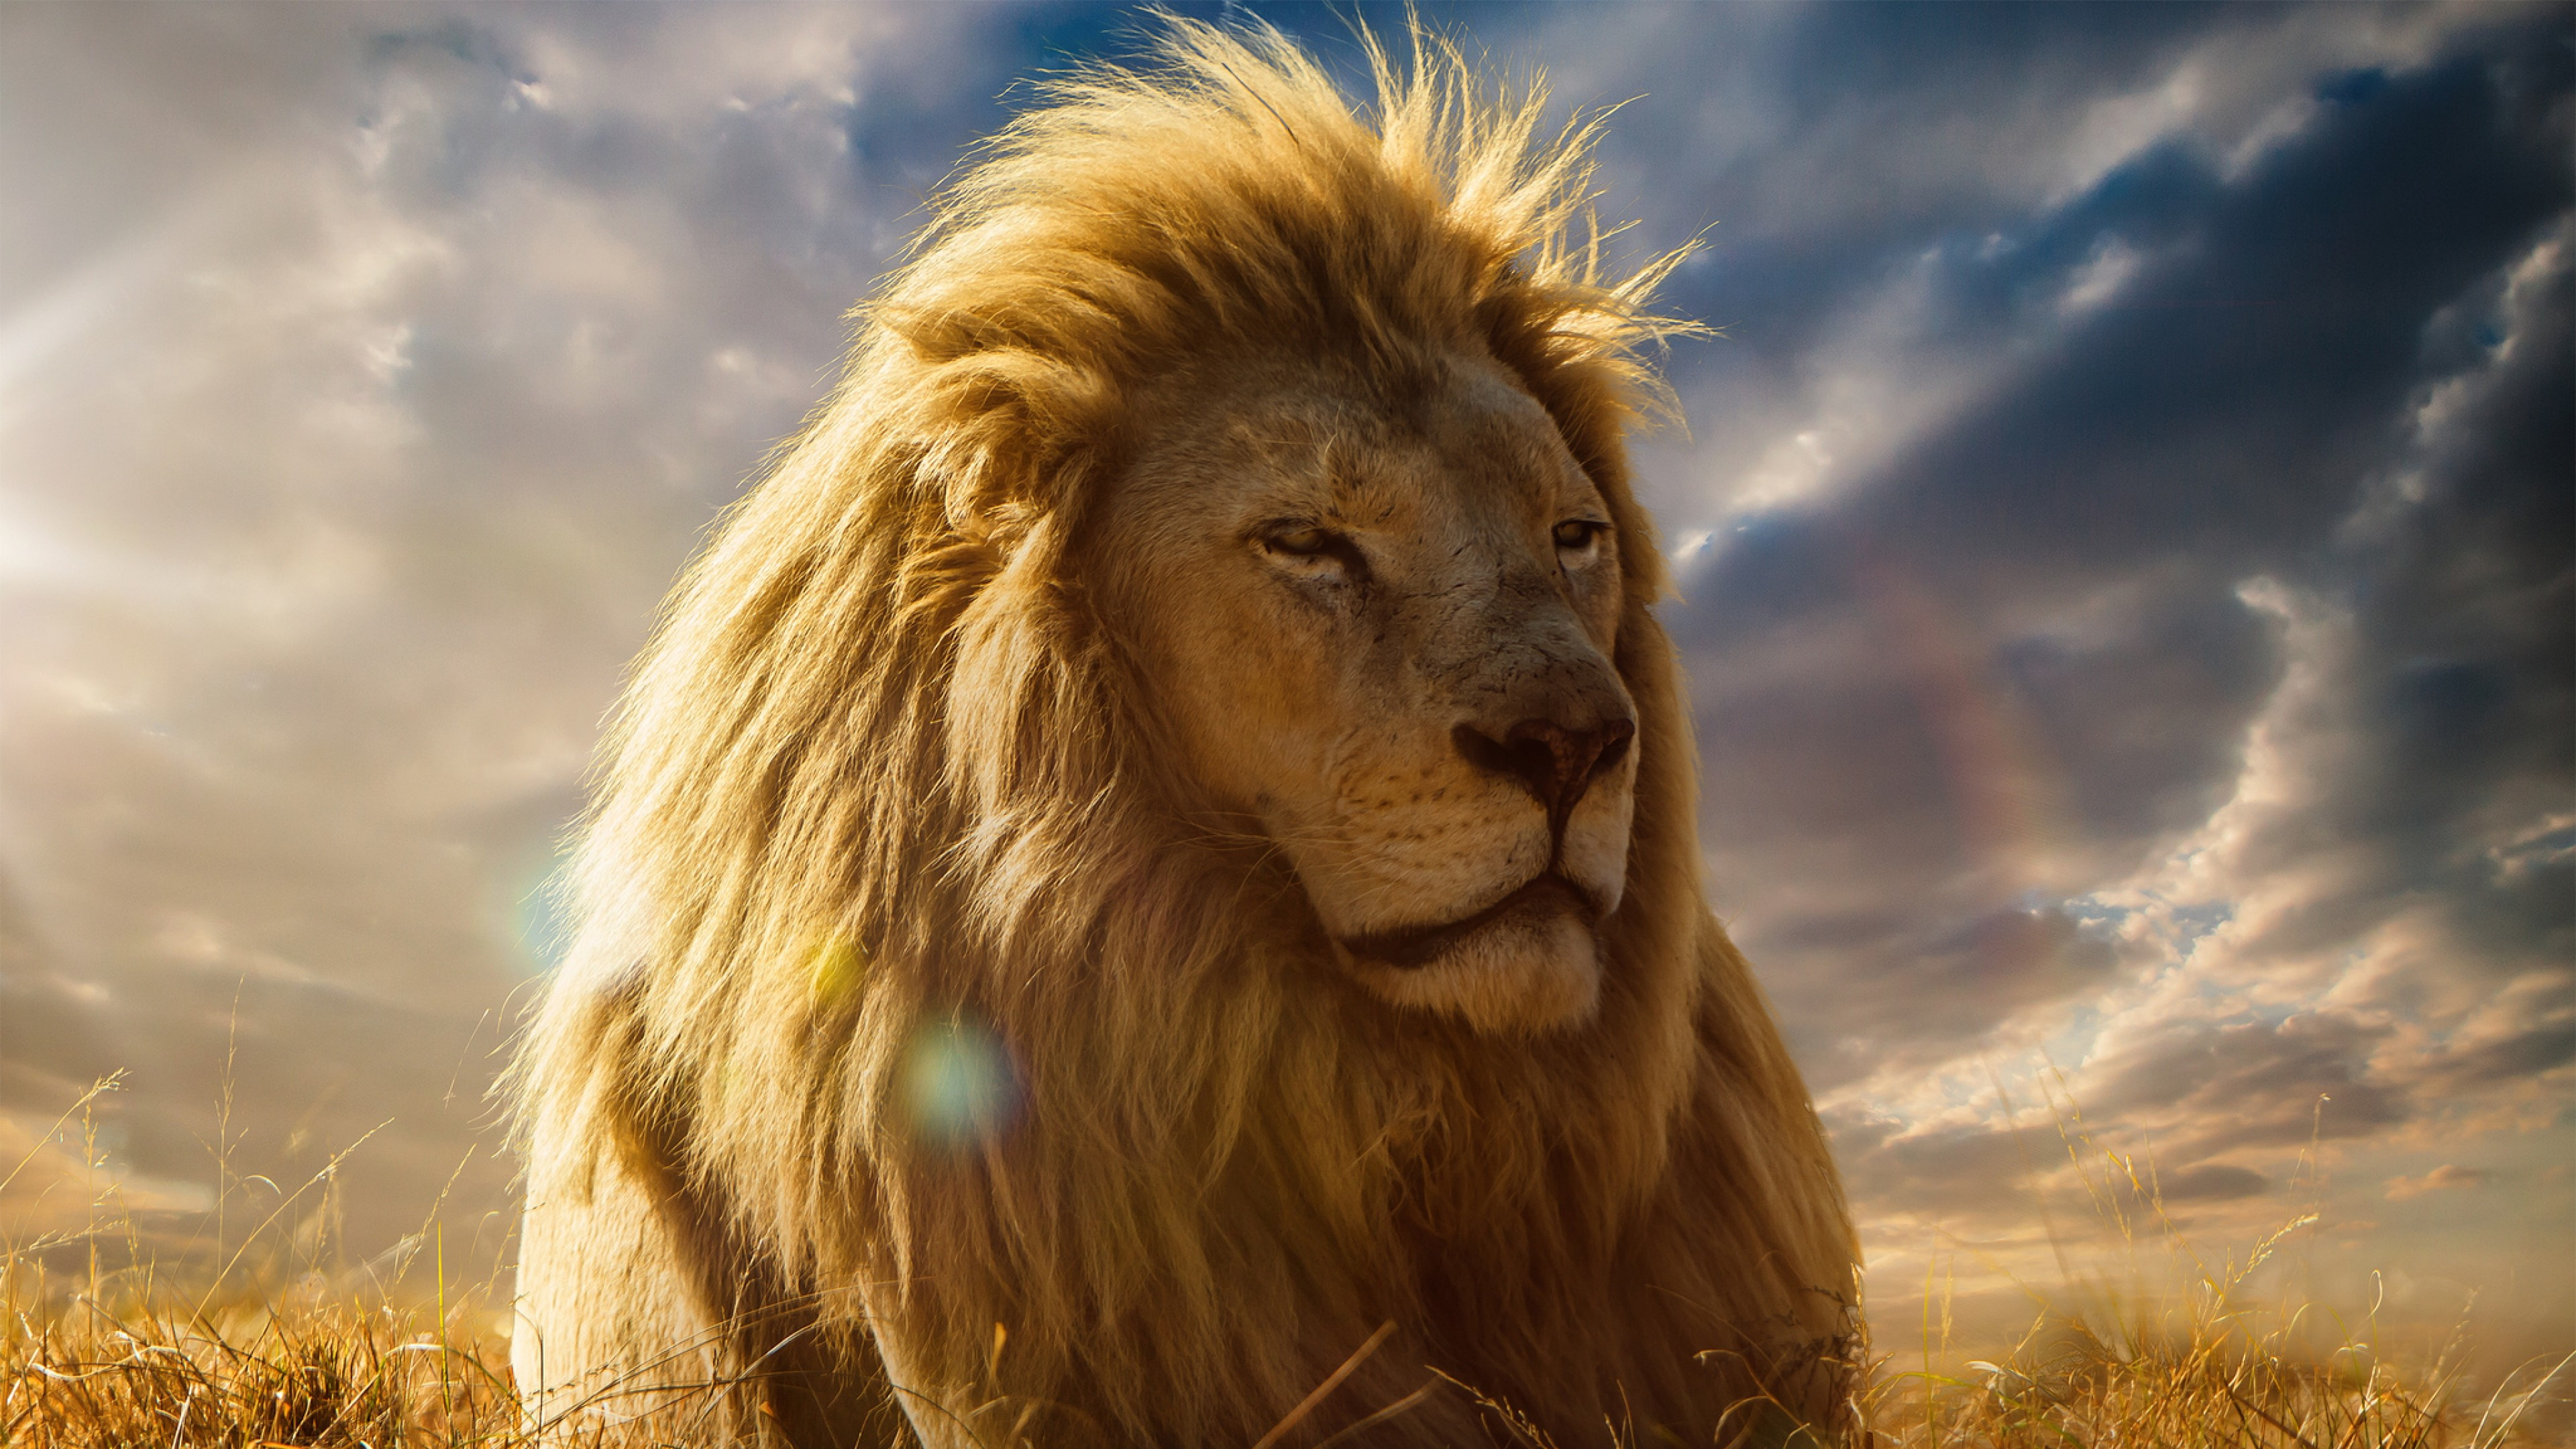 Wallpapers Lion Pictures 81 Images